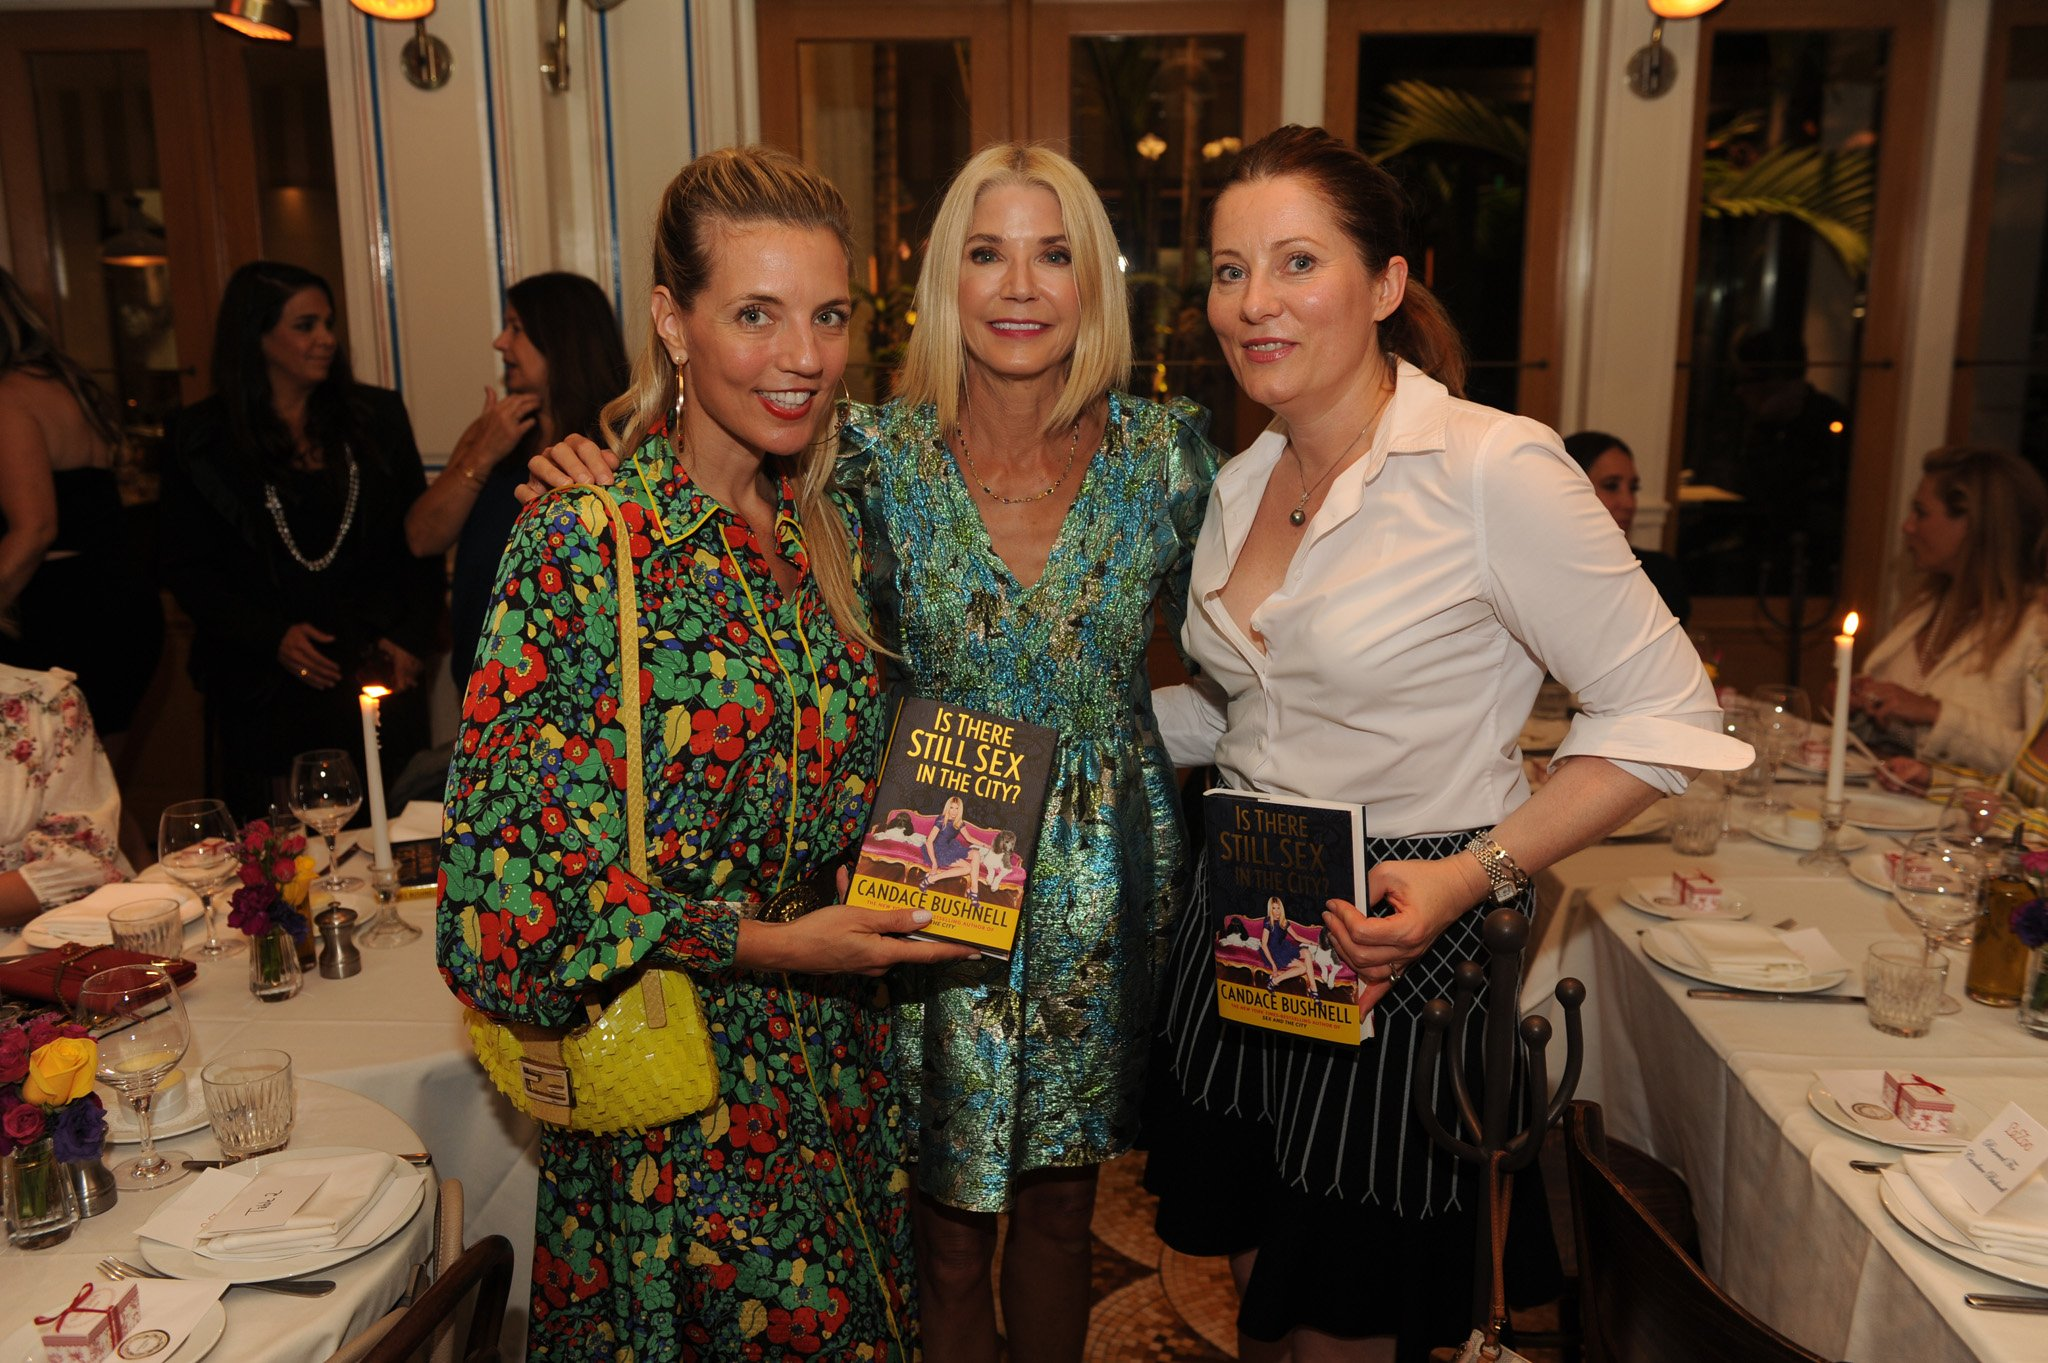 Dana Rhoden, Candace Bushnell and Inga Miller